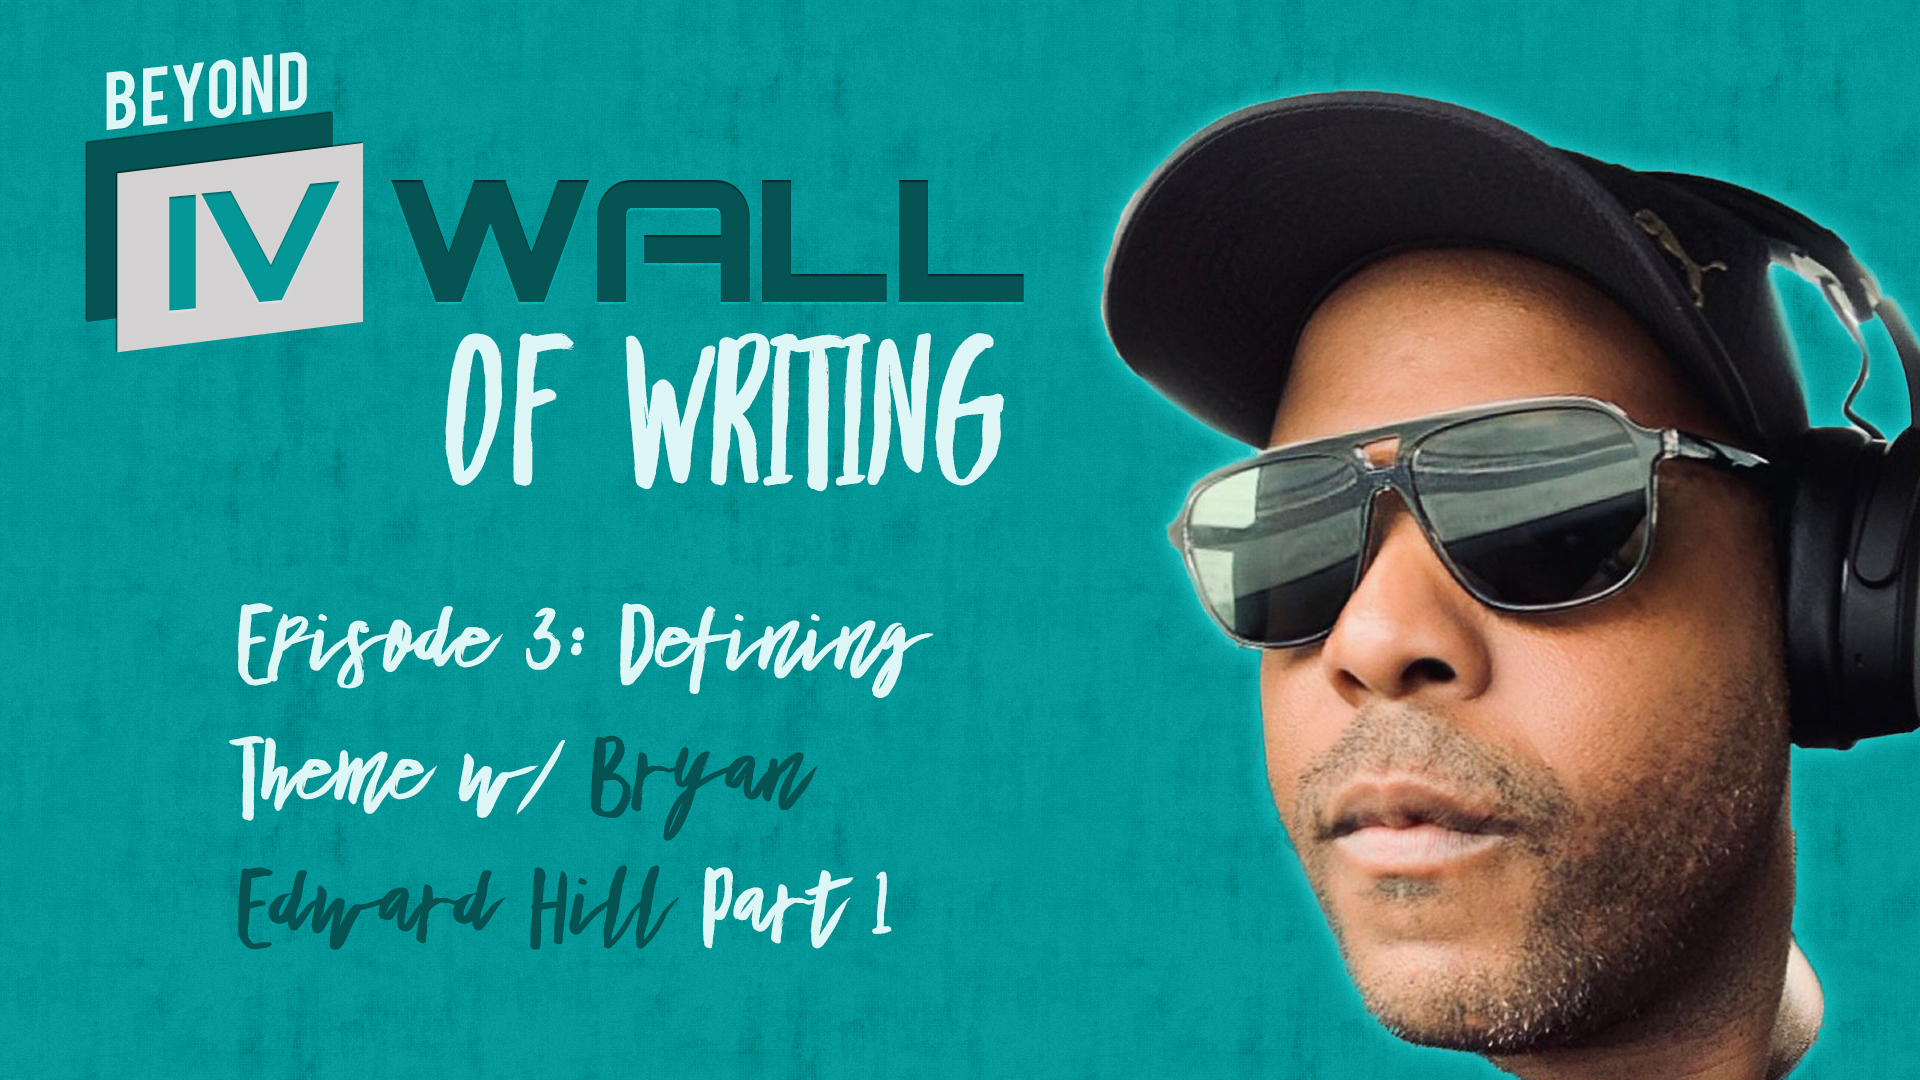 Beyond the IVWall of Writing: Episode 3- Defining Theme w/ Bryan Edward Hill, Part 1